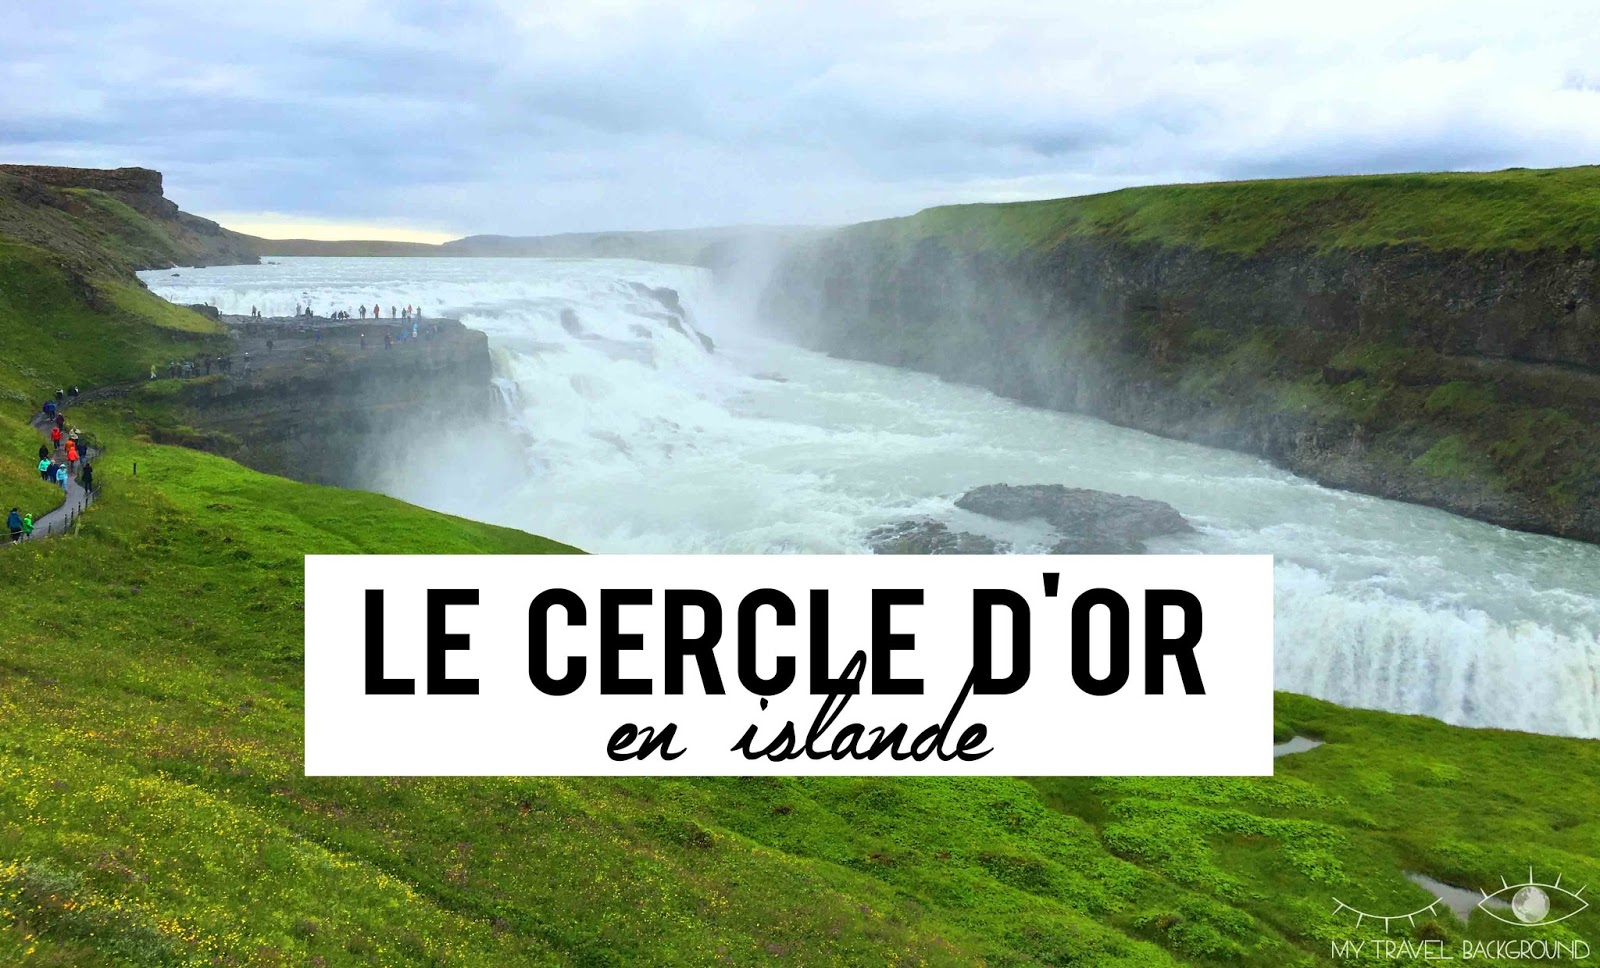 My Travel Background : visite du Cercle d'Or en Islande